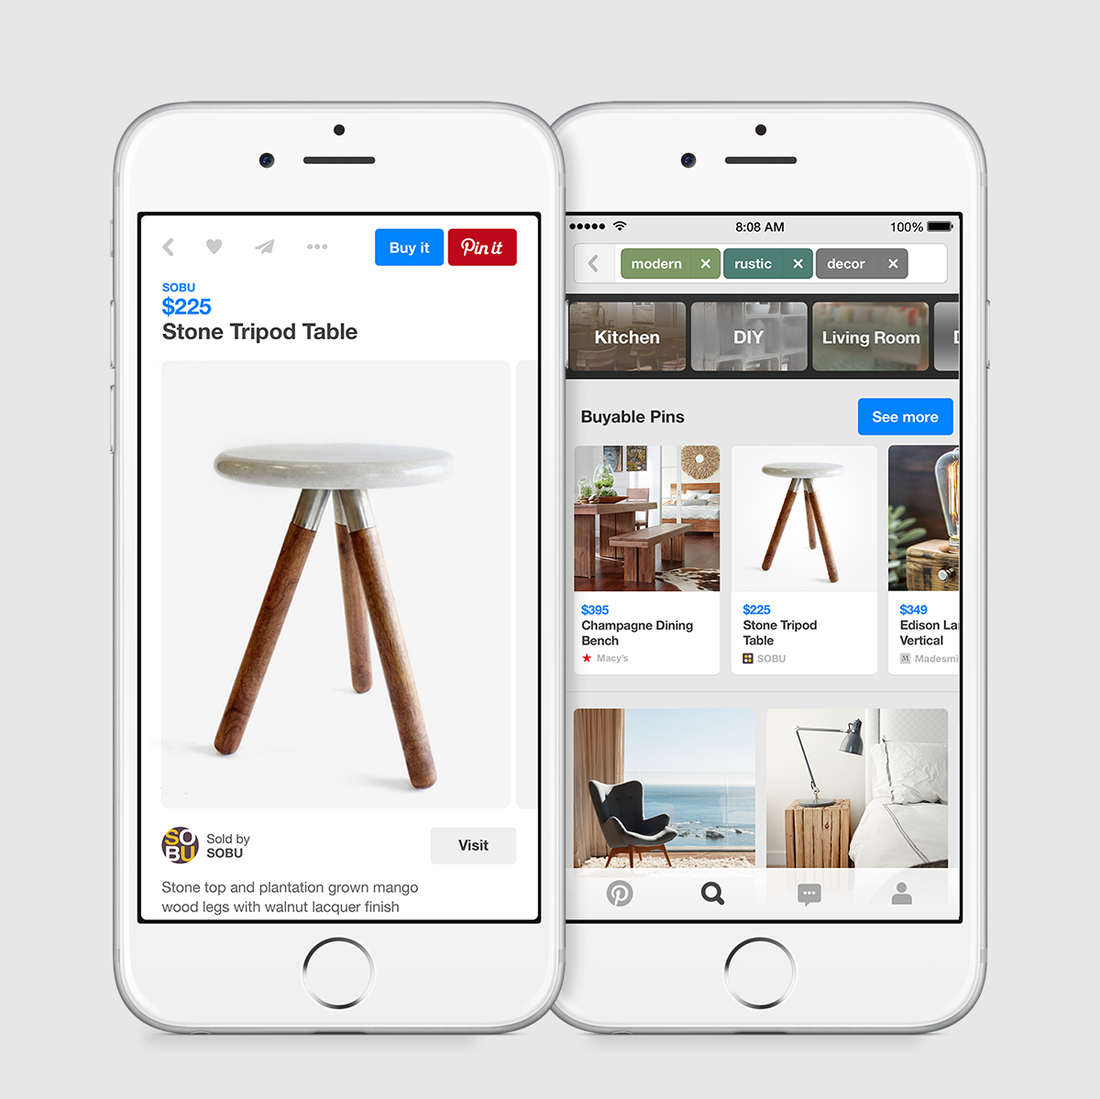 Coming Soon: More Ads On Instagram, And A 'Buy' Feature On Pinterest